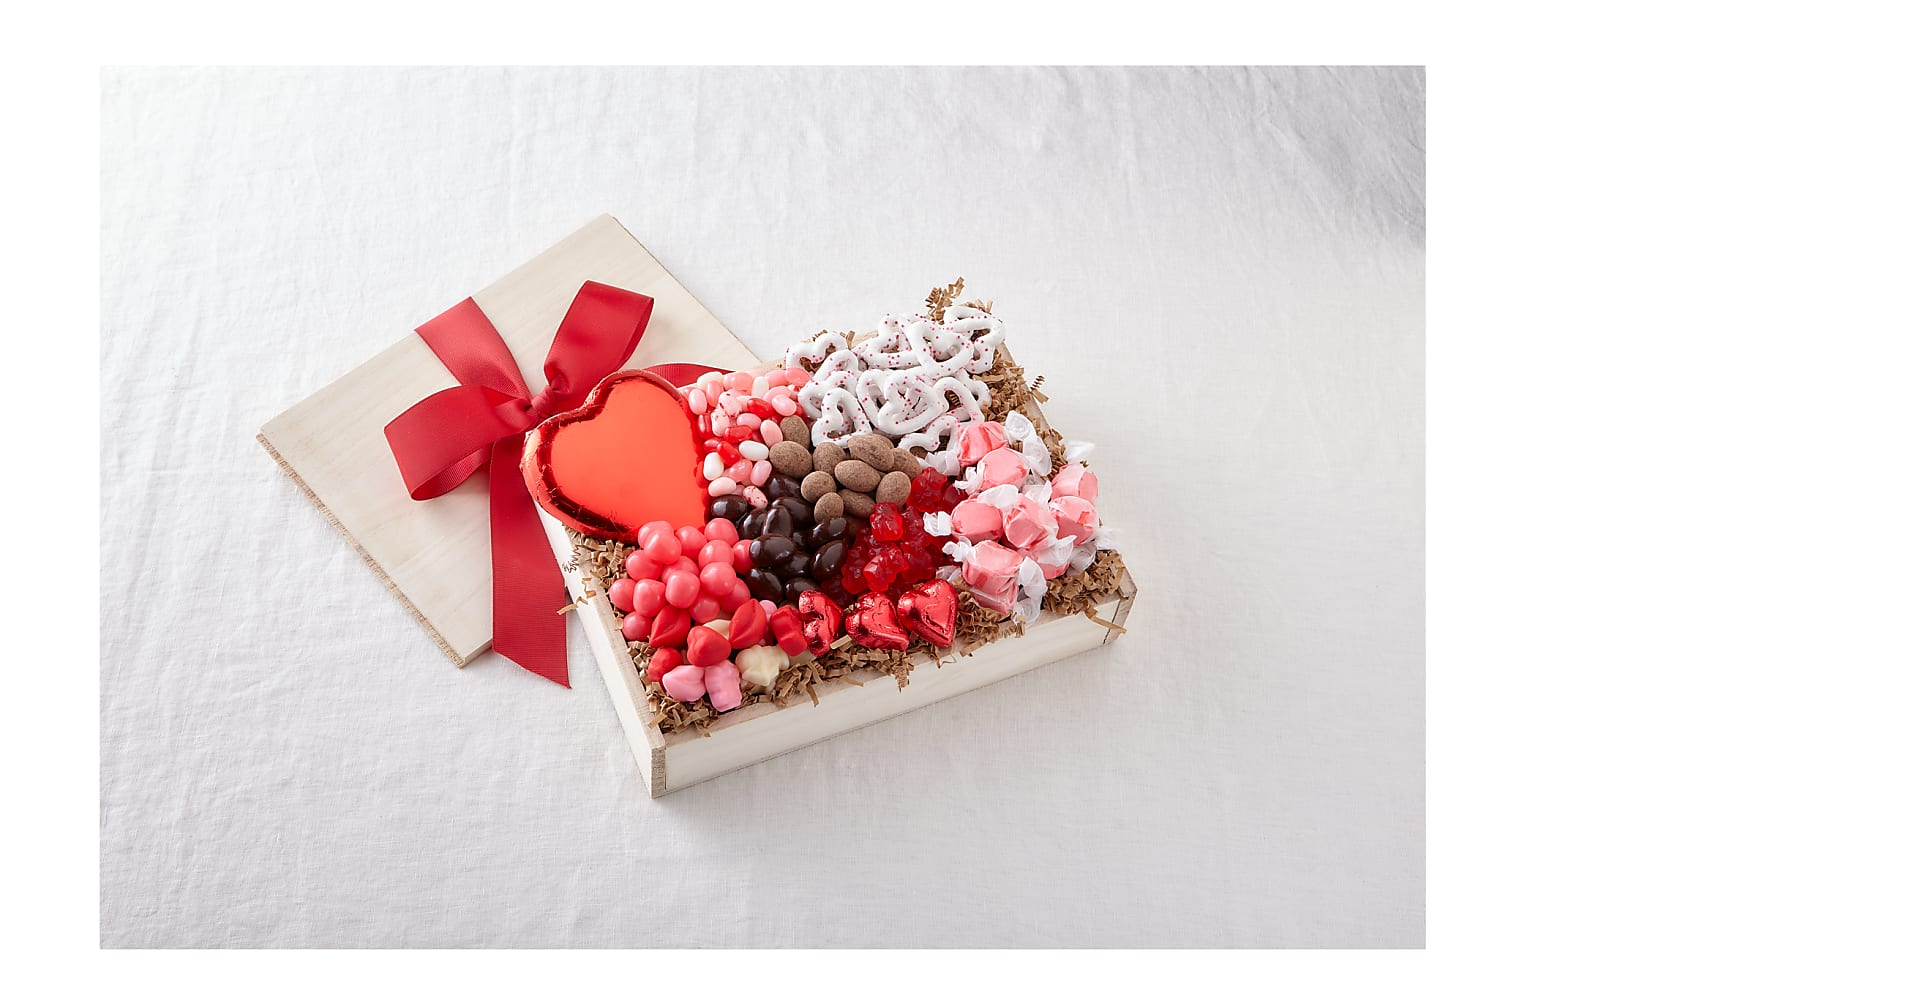 How Sweet Valentine's Day Gift Box - Image 1 Of 2